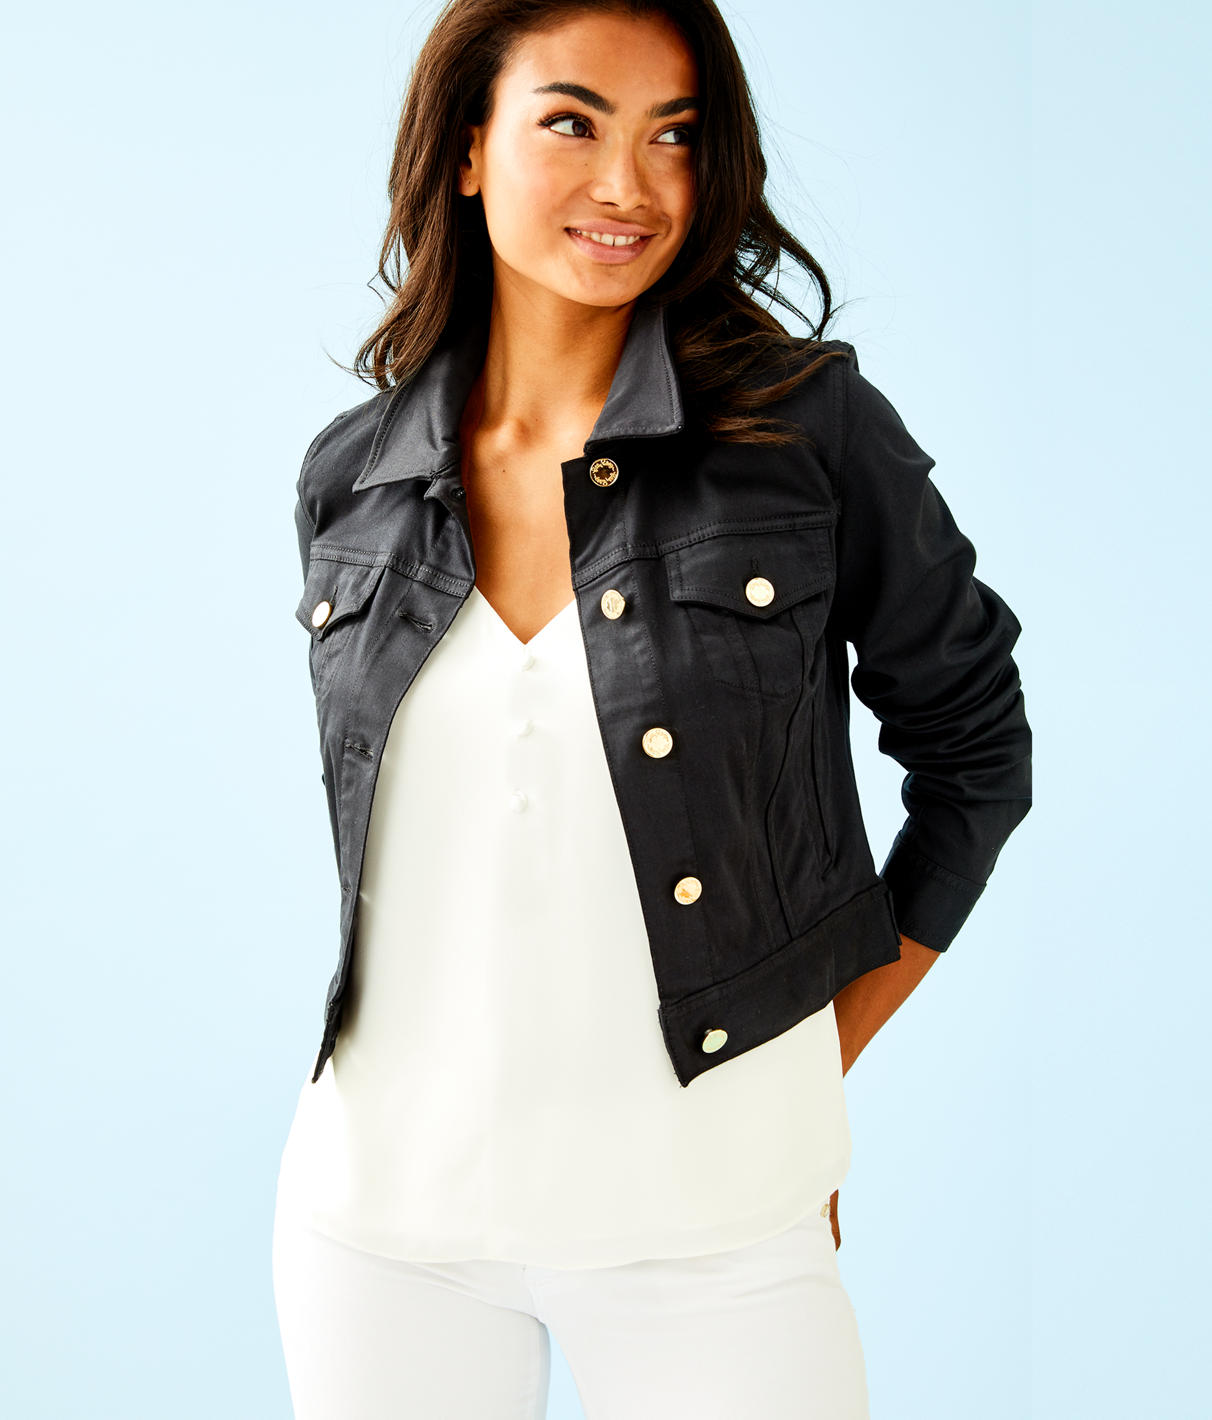 Lilly Pulitzer Seaspray Jacket